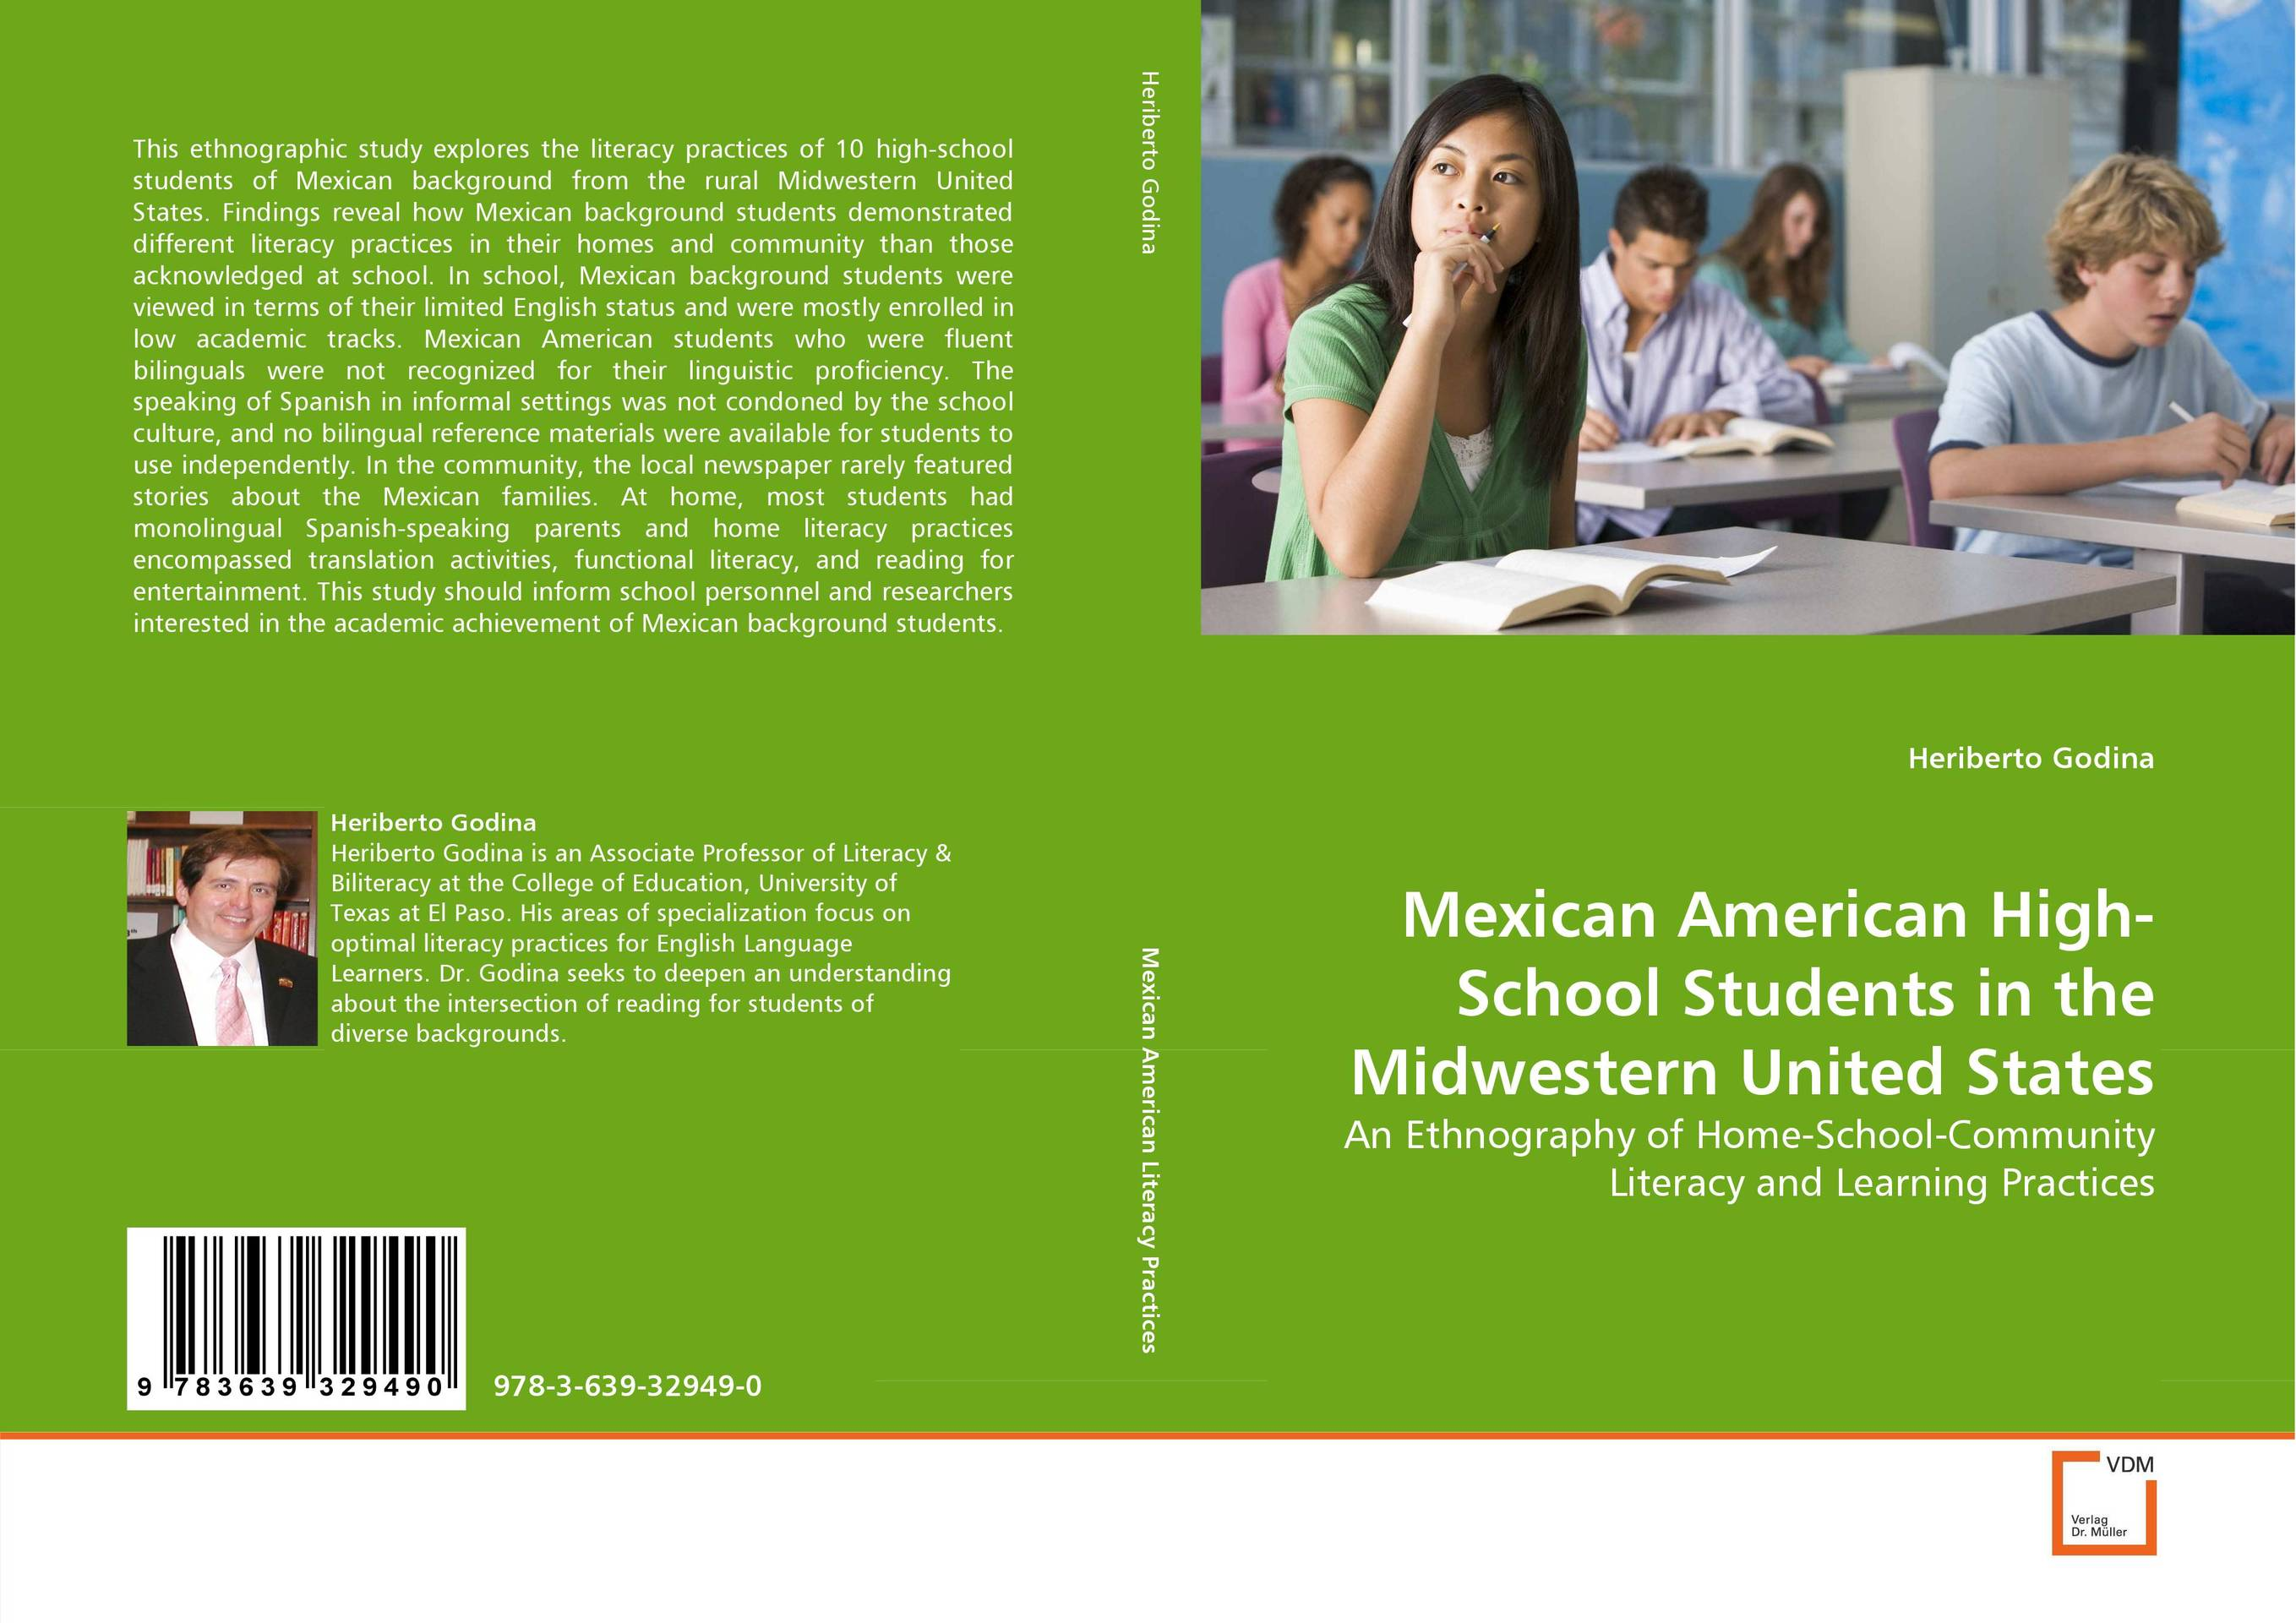 Mexican American High-School Students in the Midwestern United States world music pedagogy in the united states middle school